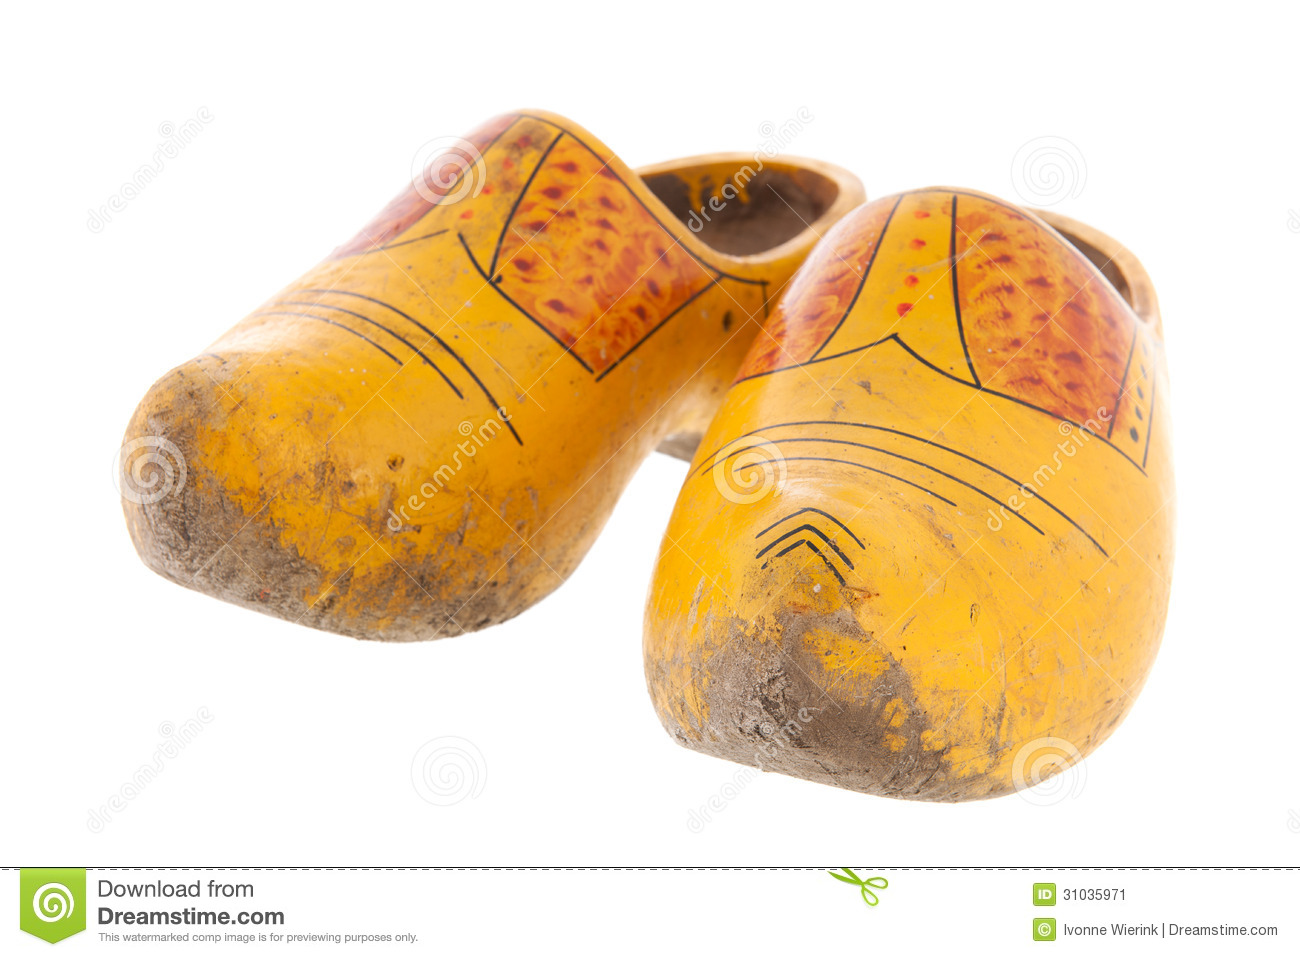 Dutch Wooden Shoes in People